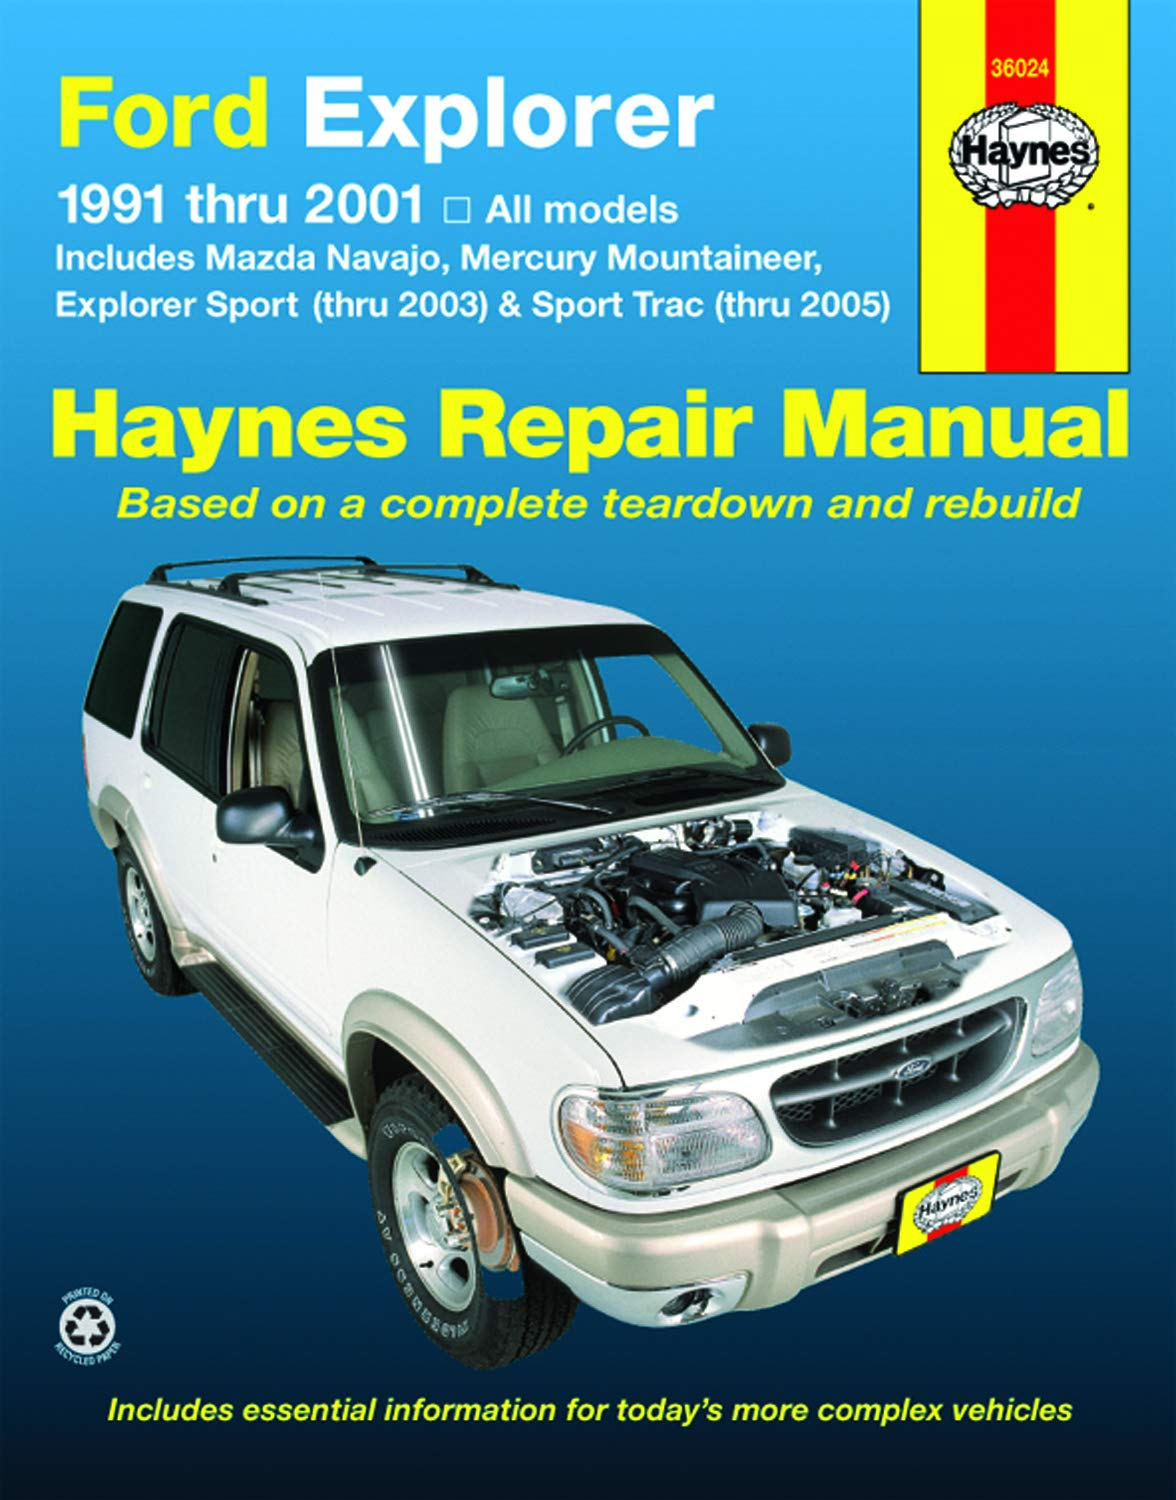 ford explorer 91-01, explorer sport thru 03, sport trac 05: john h. haynes,  jay storer: 9781563925917: amazon.com: books  amazon.com